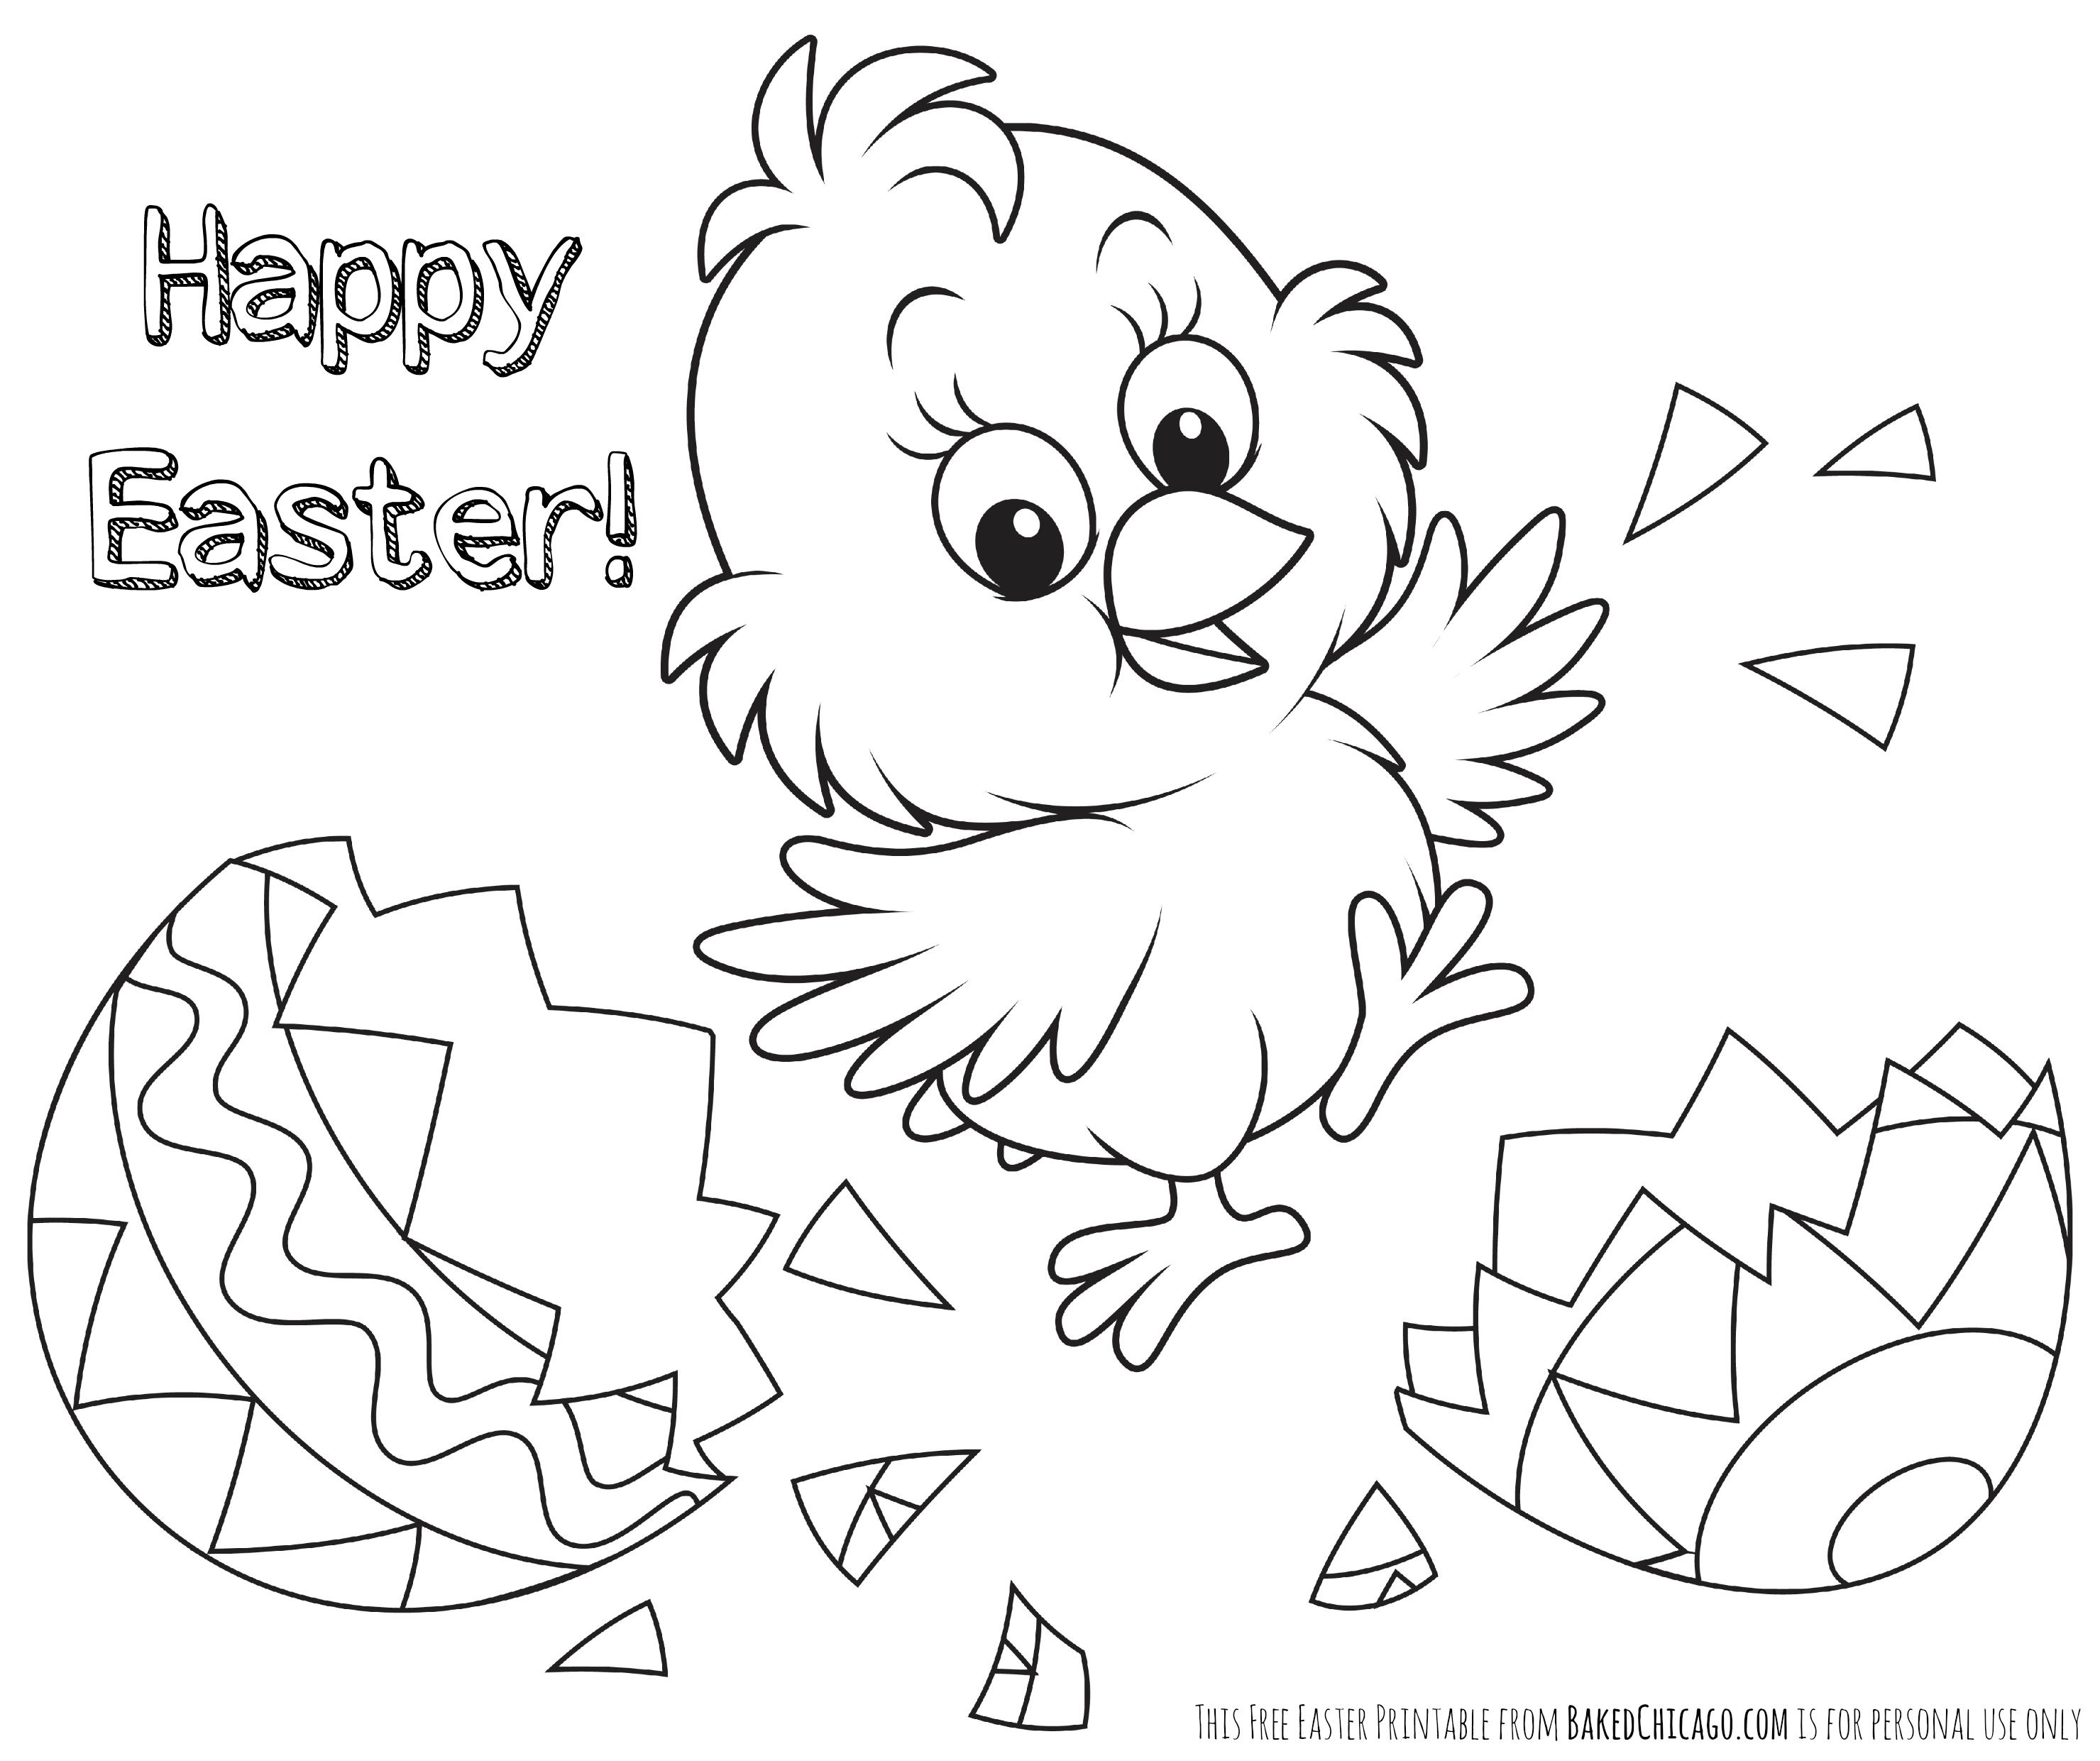 Easter Coloring Pages Printable Bloodbrothers Me Colouring Sheets - Free Printable Easter Colouring Sheets